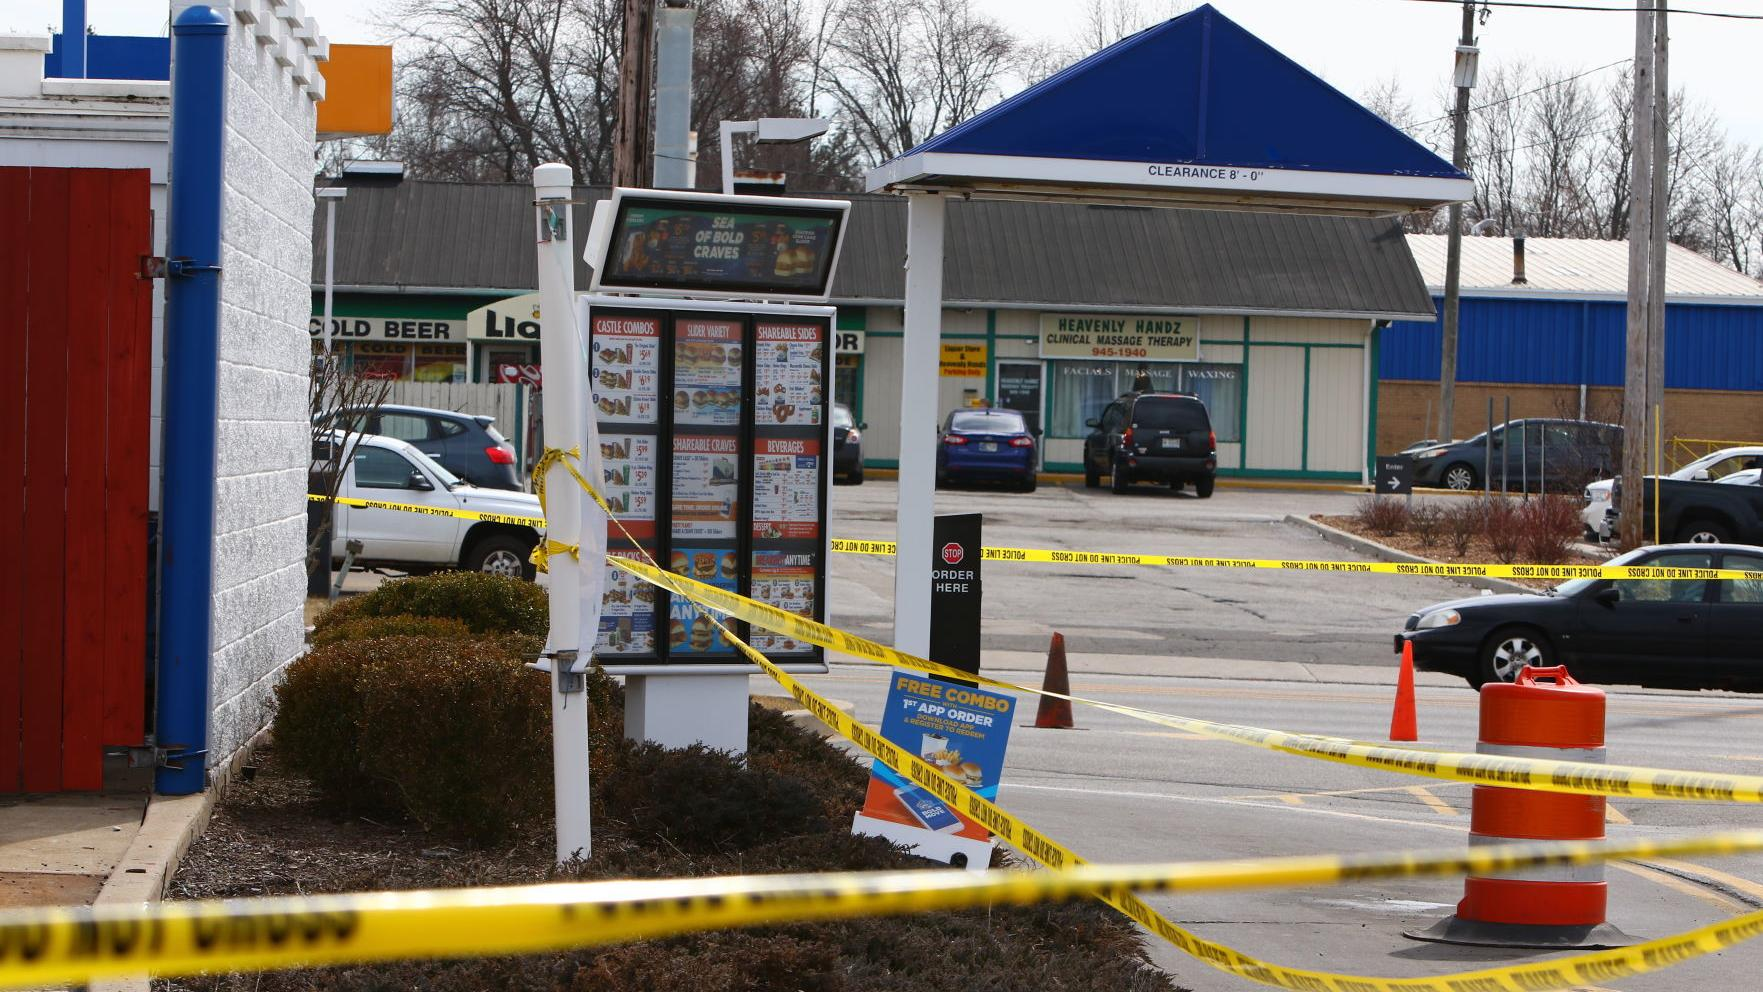 Police still investigating the suspected 'one pot' meth lab found at White Castle in Hobart